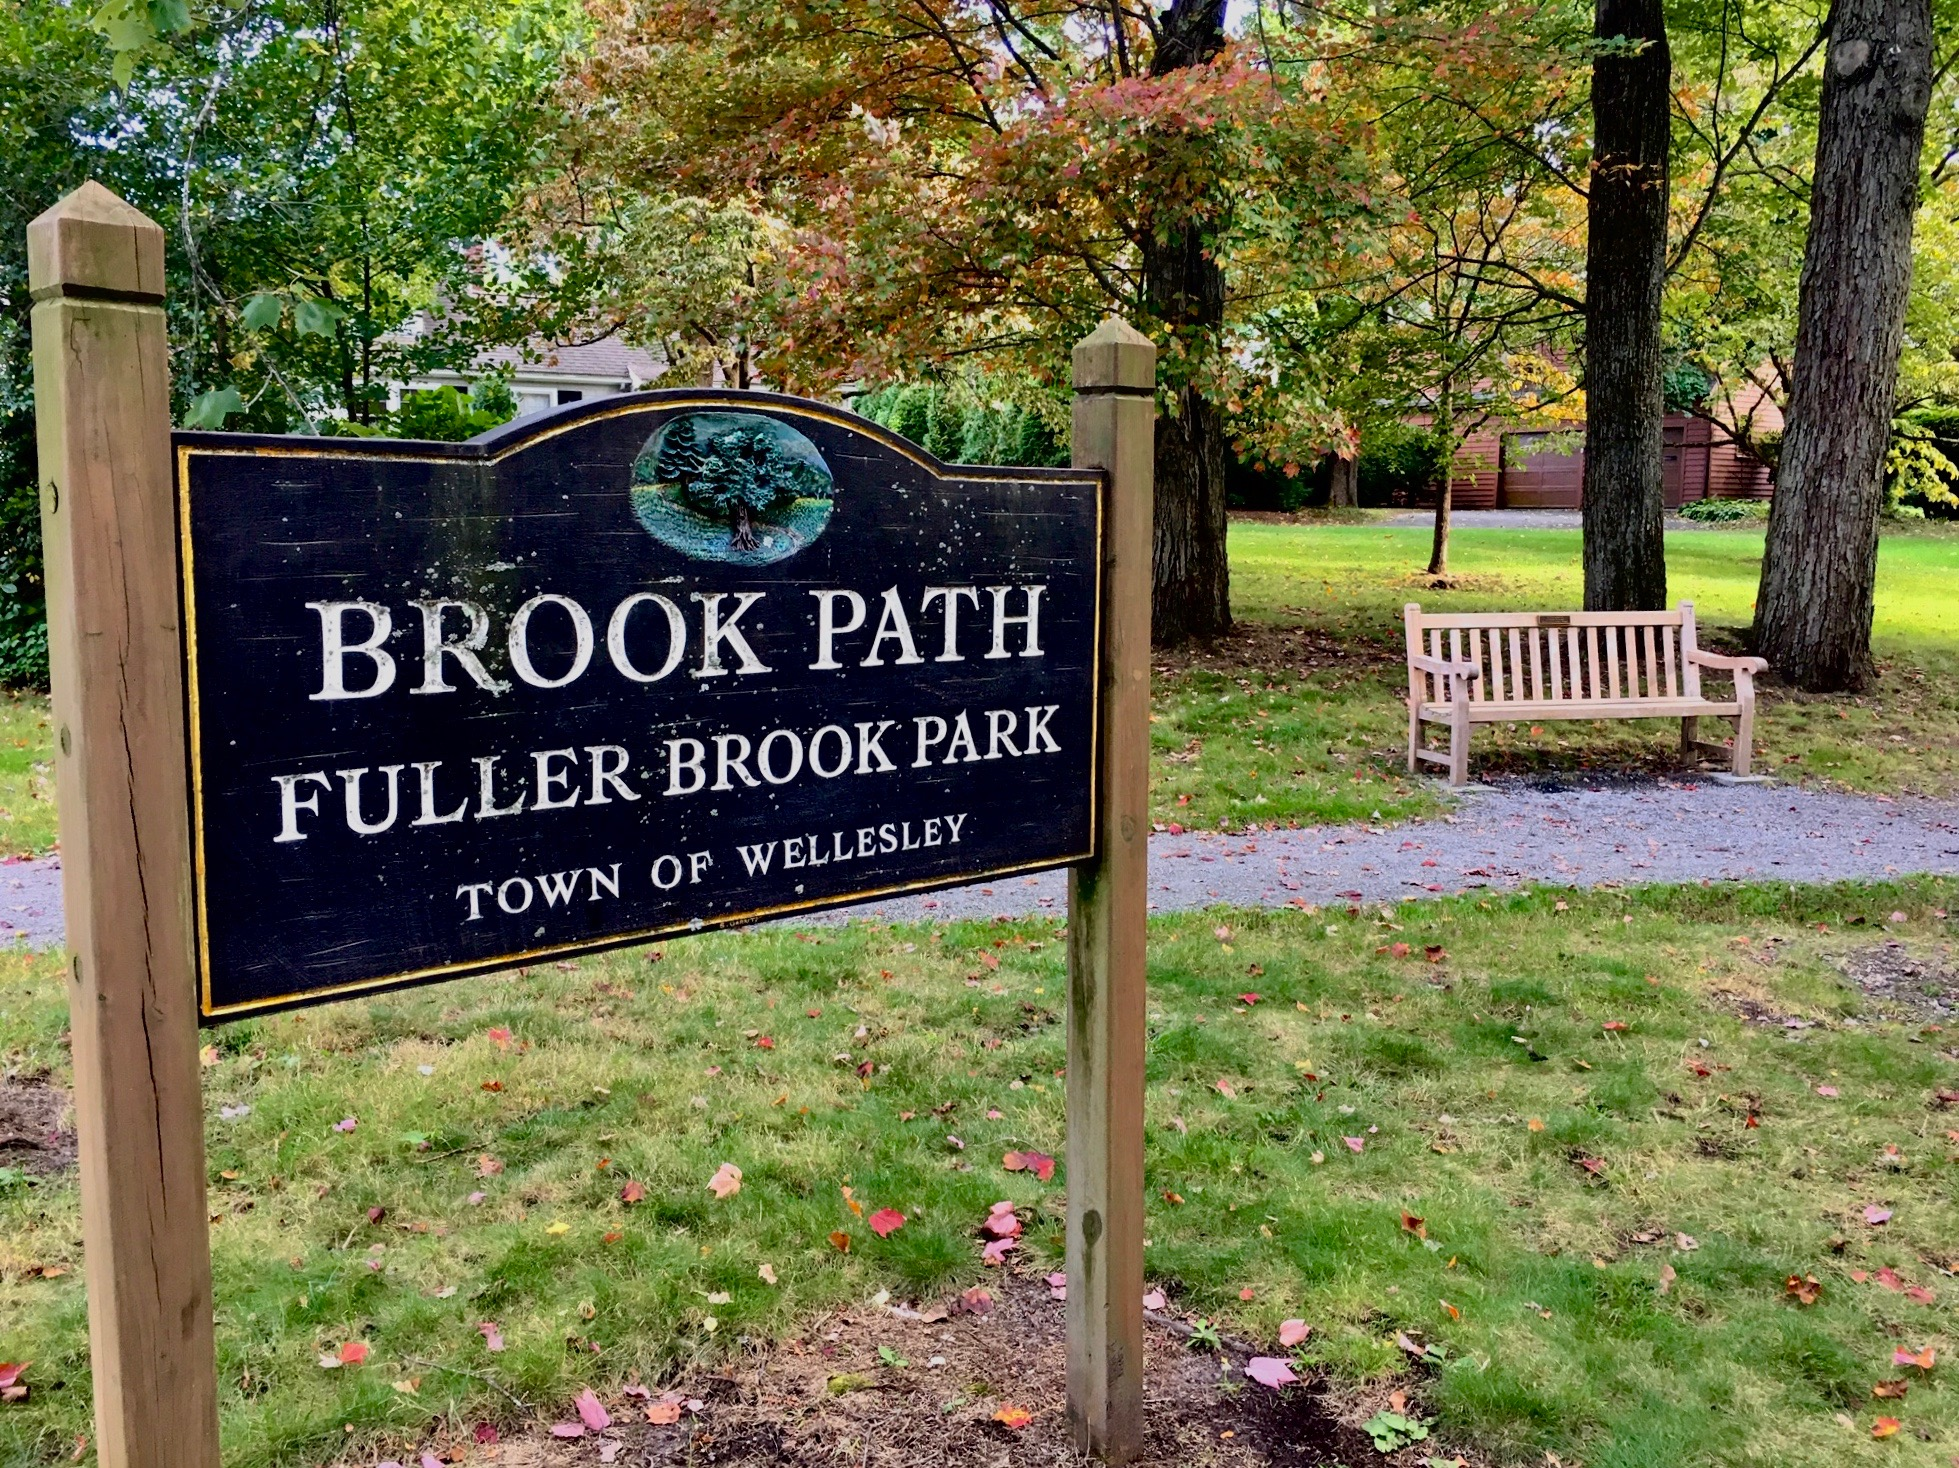 Fuller Brook Park, early fall 2019